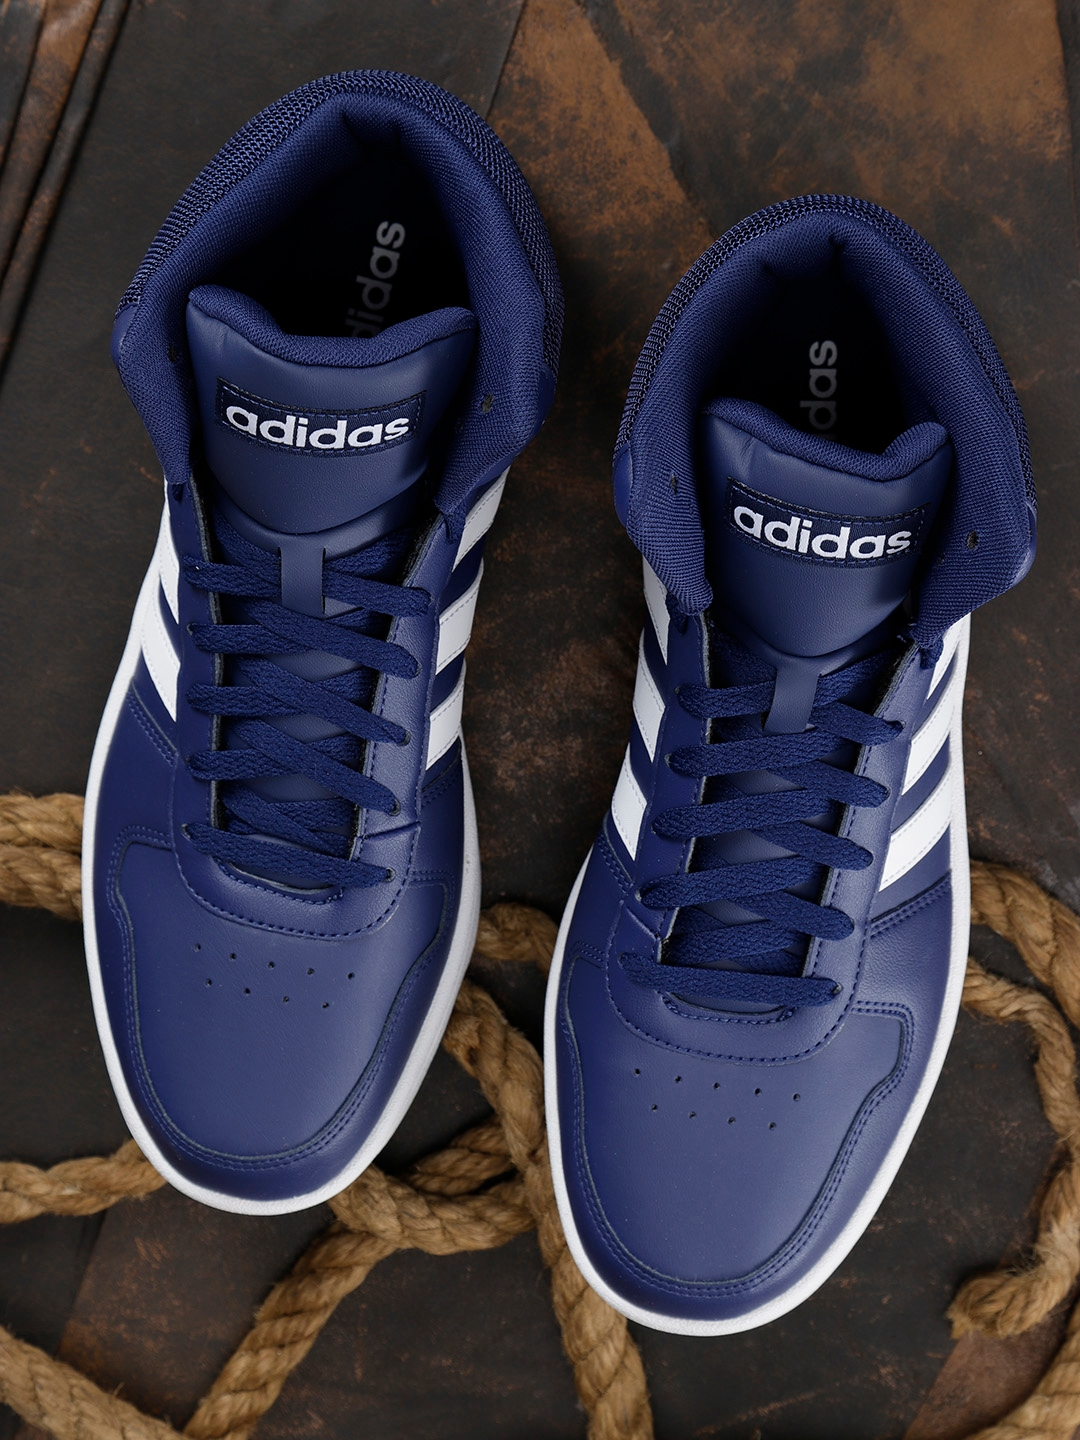 10f1d58e2556 Buy ADIDAS Men Navy Blue Hoops 2.0 Mid Basketball Shoes - Sports ...